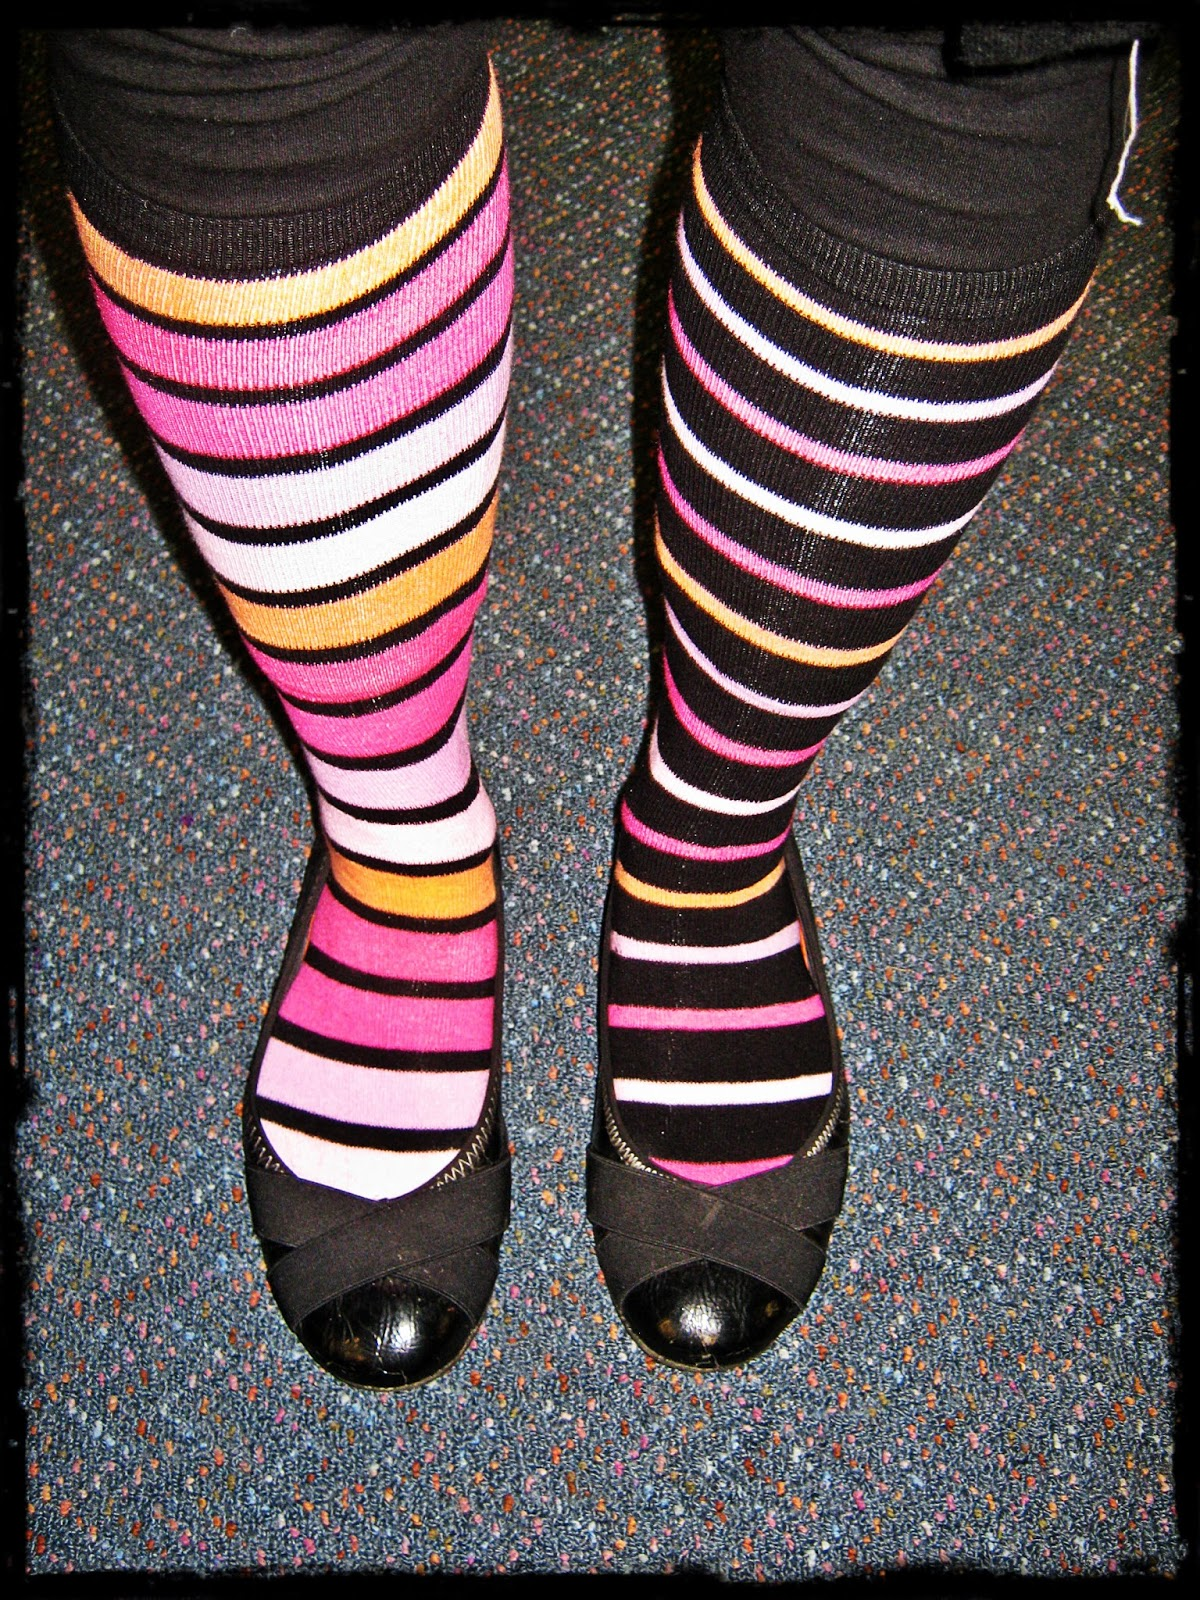 For Our Crazy Sock Day to